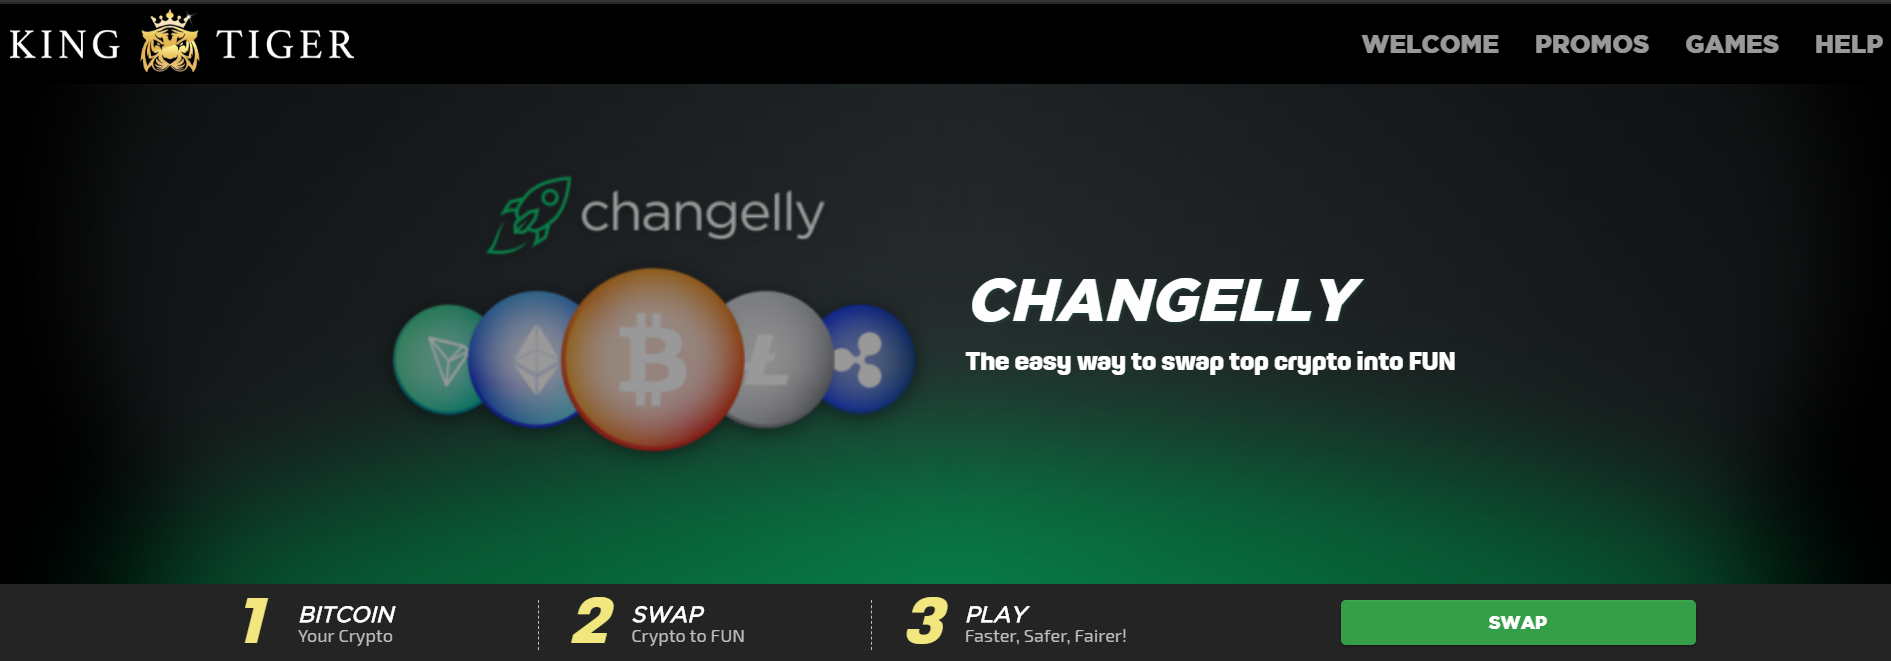 KingTiger Review - Changelly